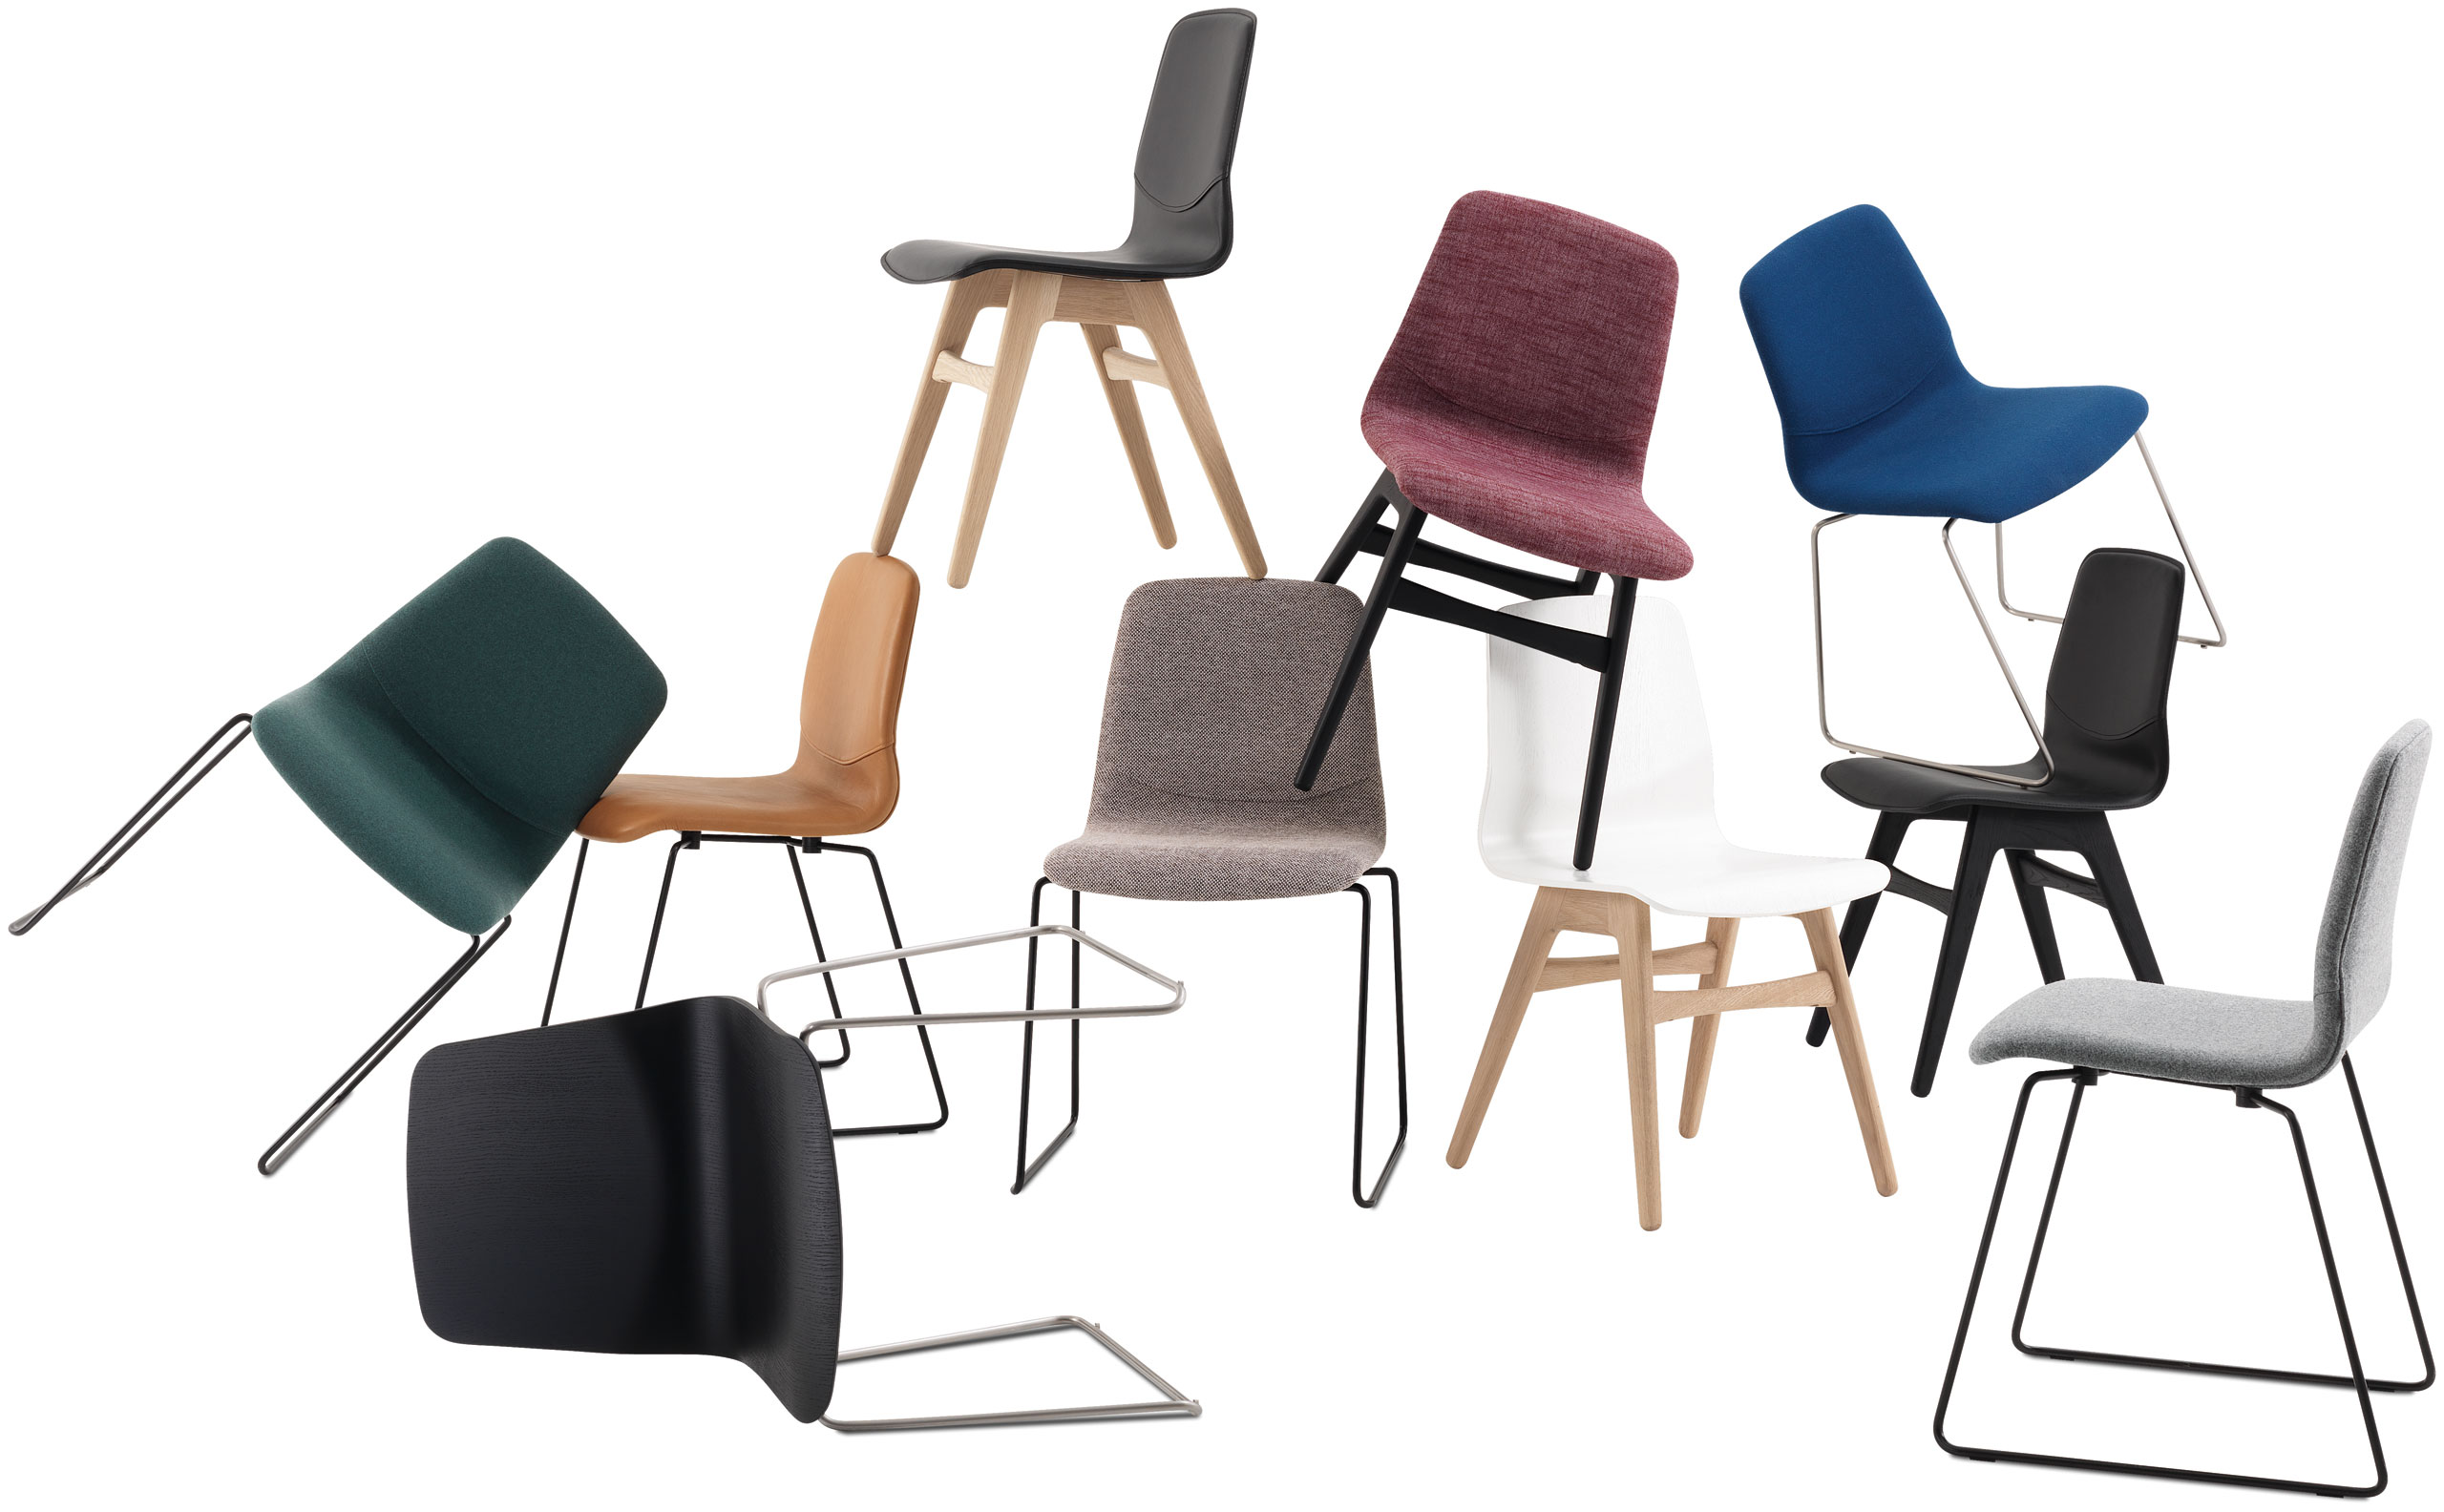 CH-S-F-MIXED-LONDON-CHAIRS-2013-1.jpg